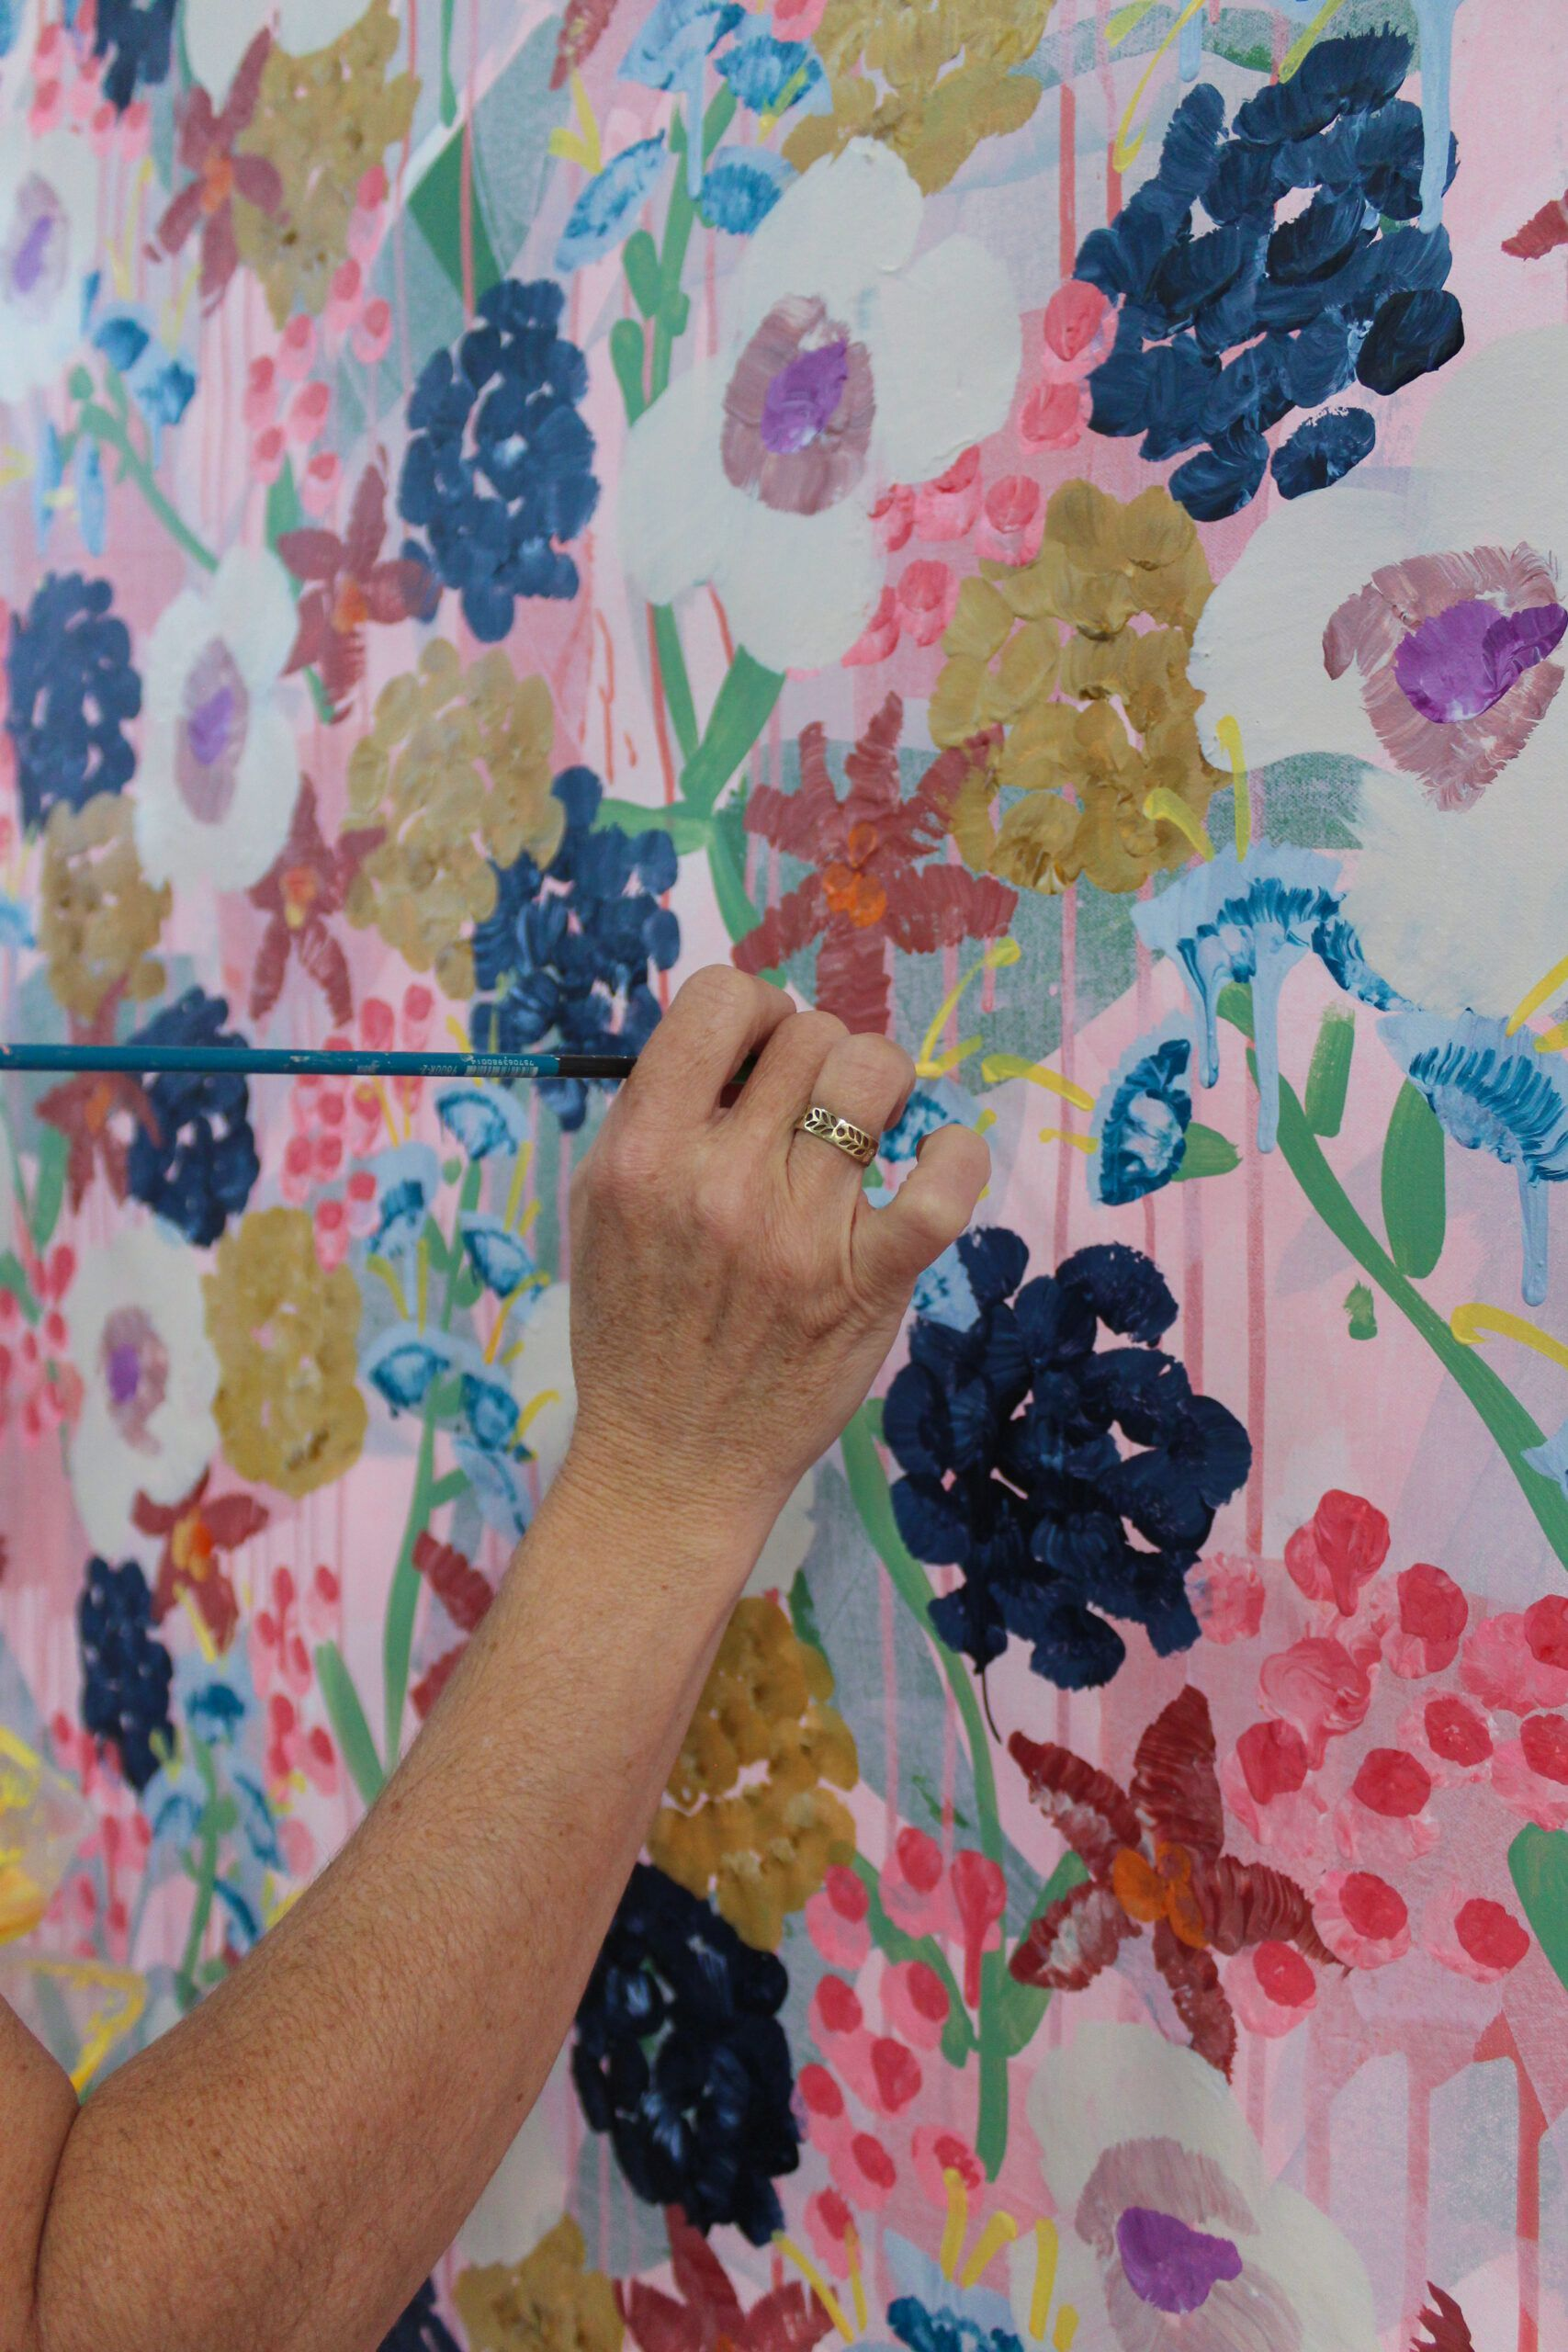 Tiff Manuell painting Garden State